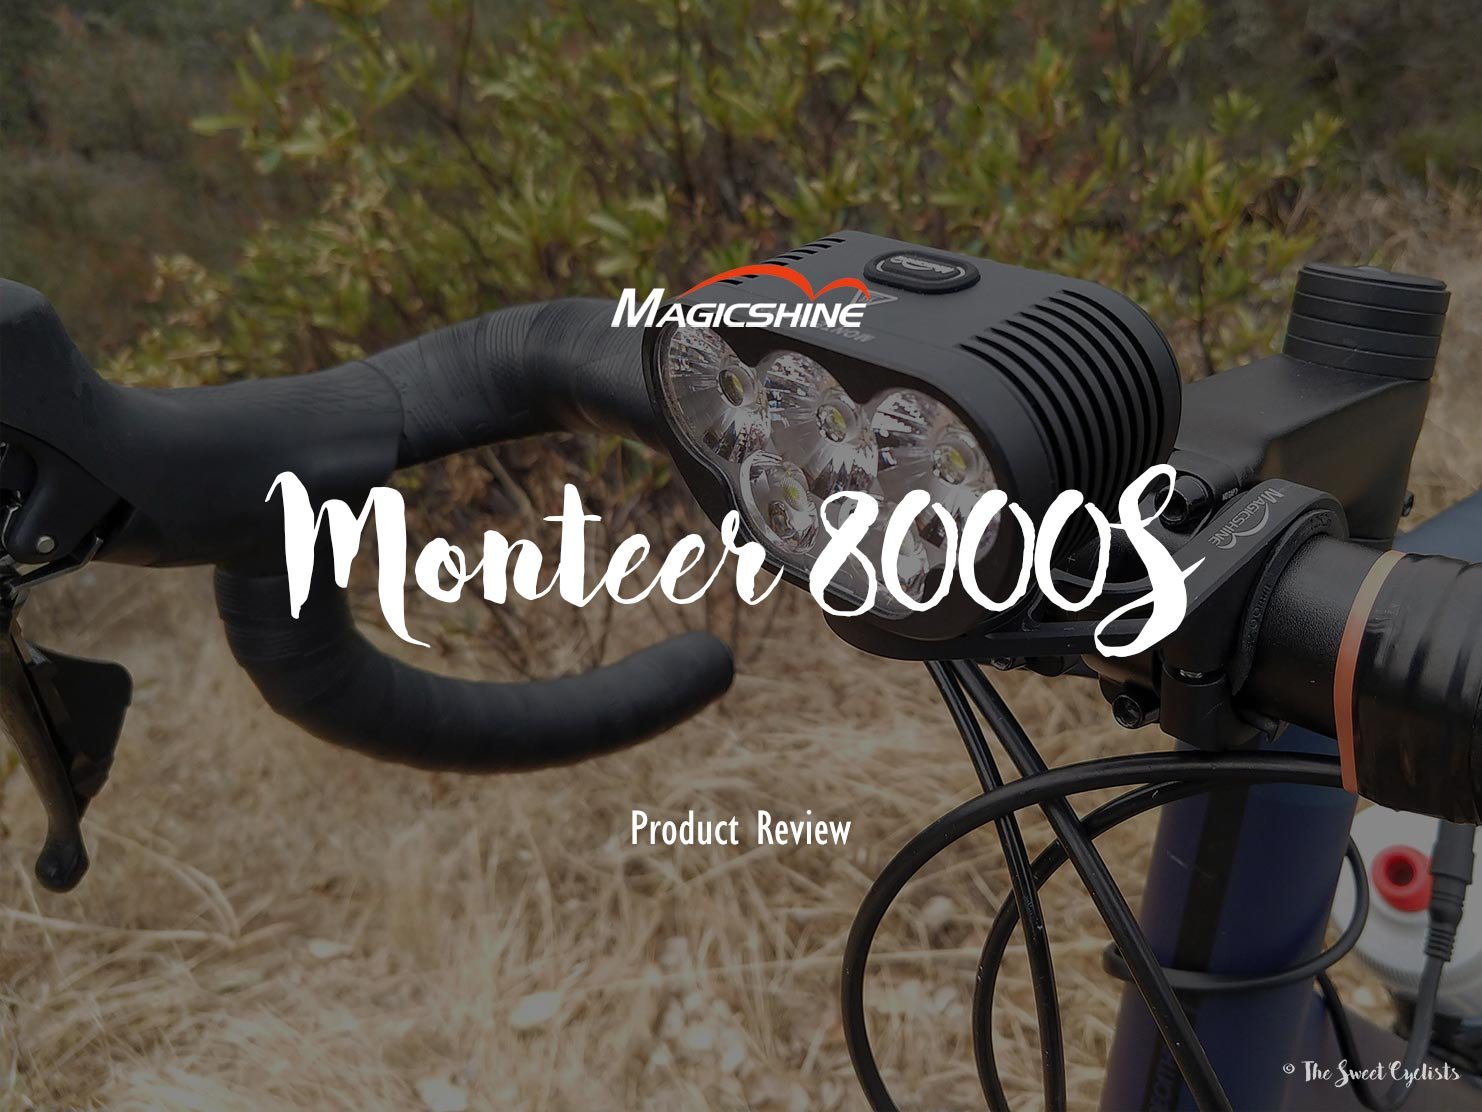 Light up the road with the Monteer 8000S